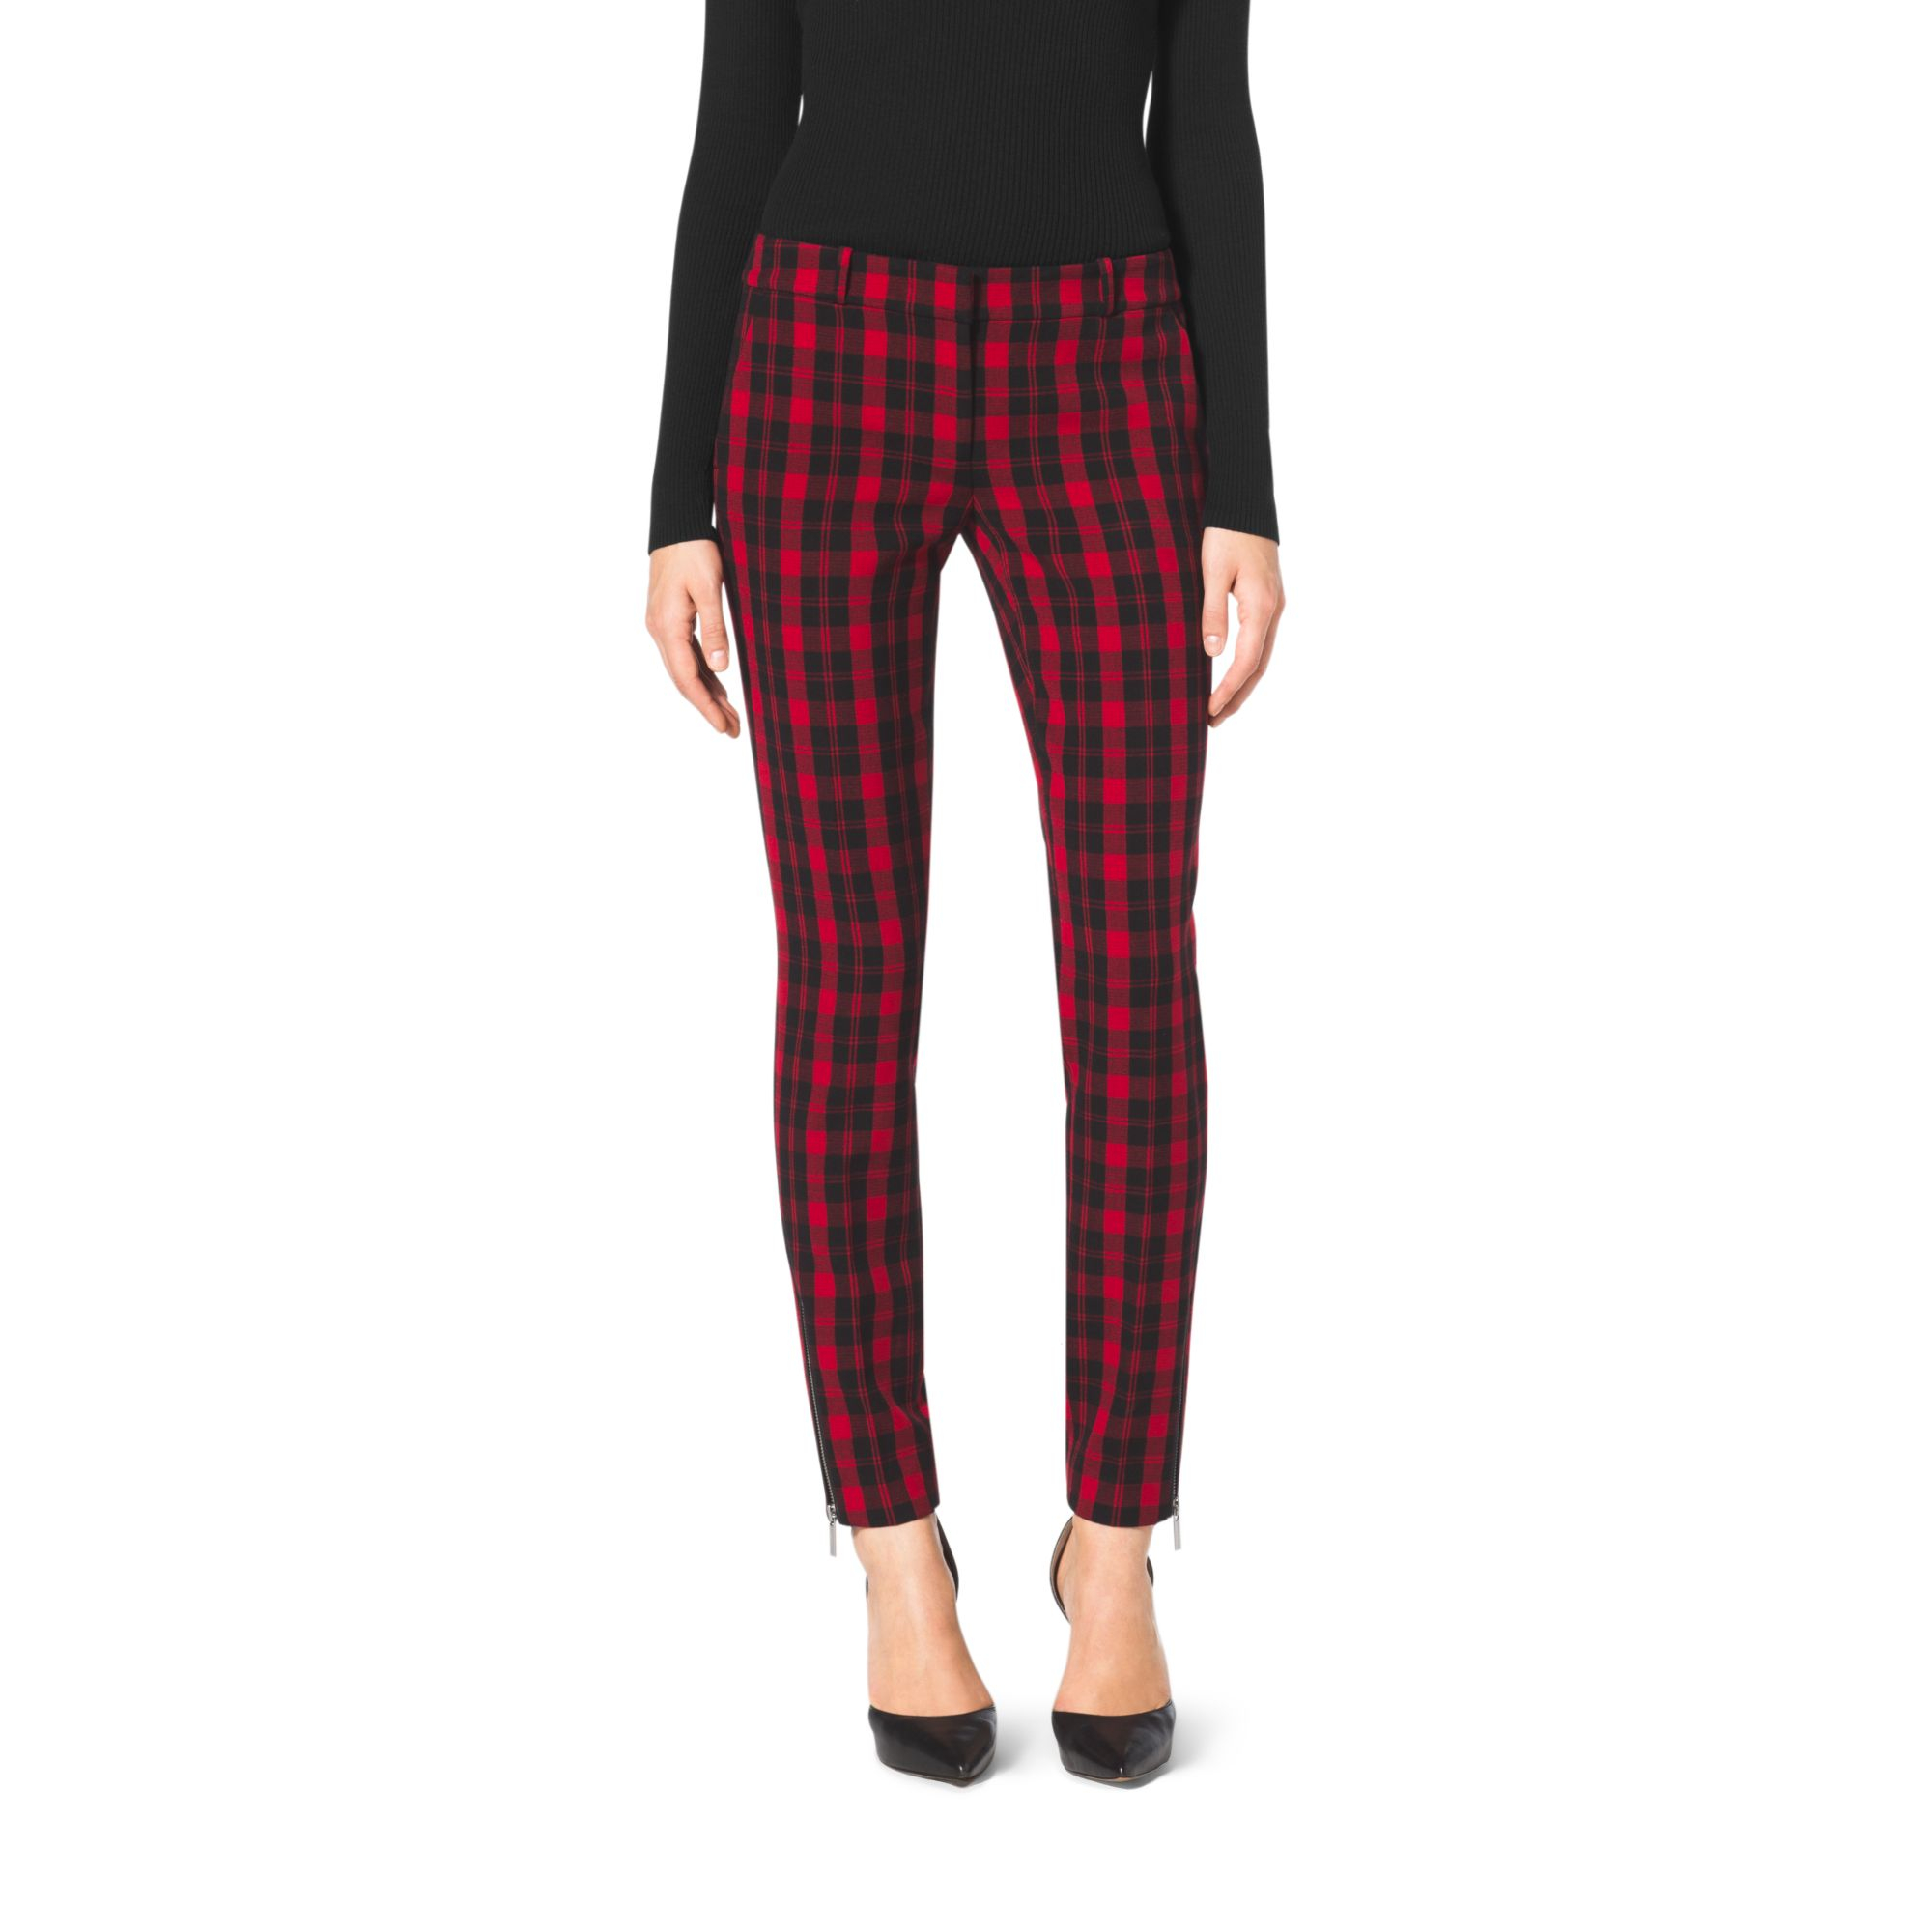 Michael kors Plaid Skinny Pants in Red | Lyst